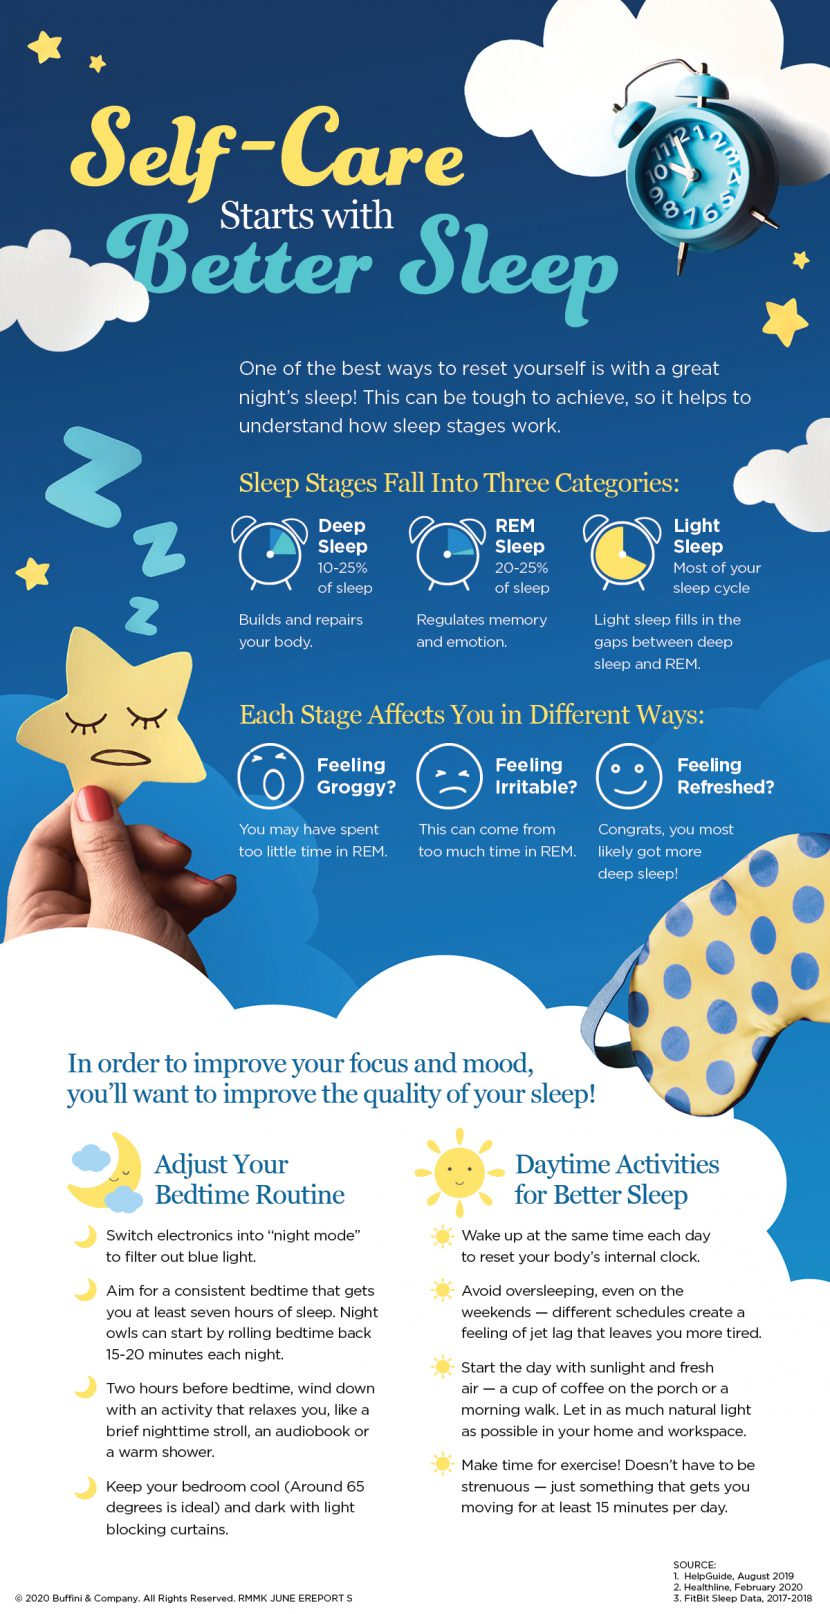 How to get better sleep to improve your focus and mood.